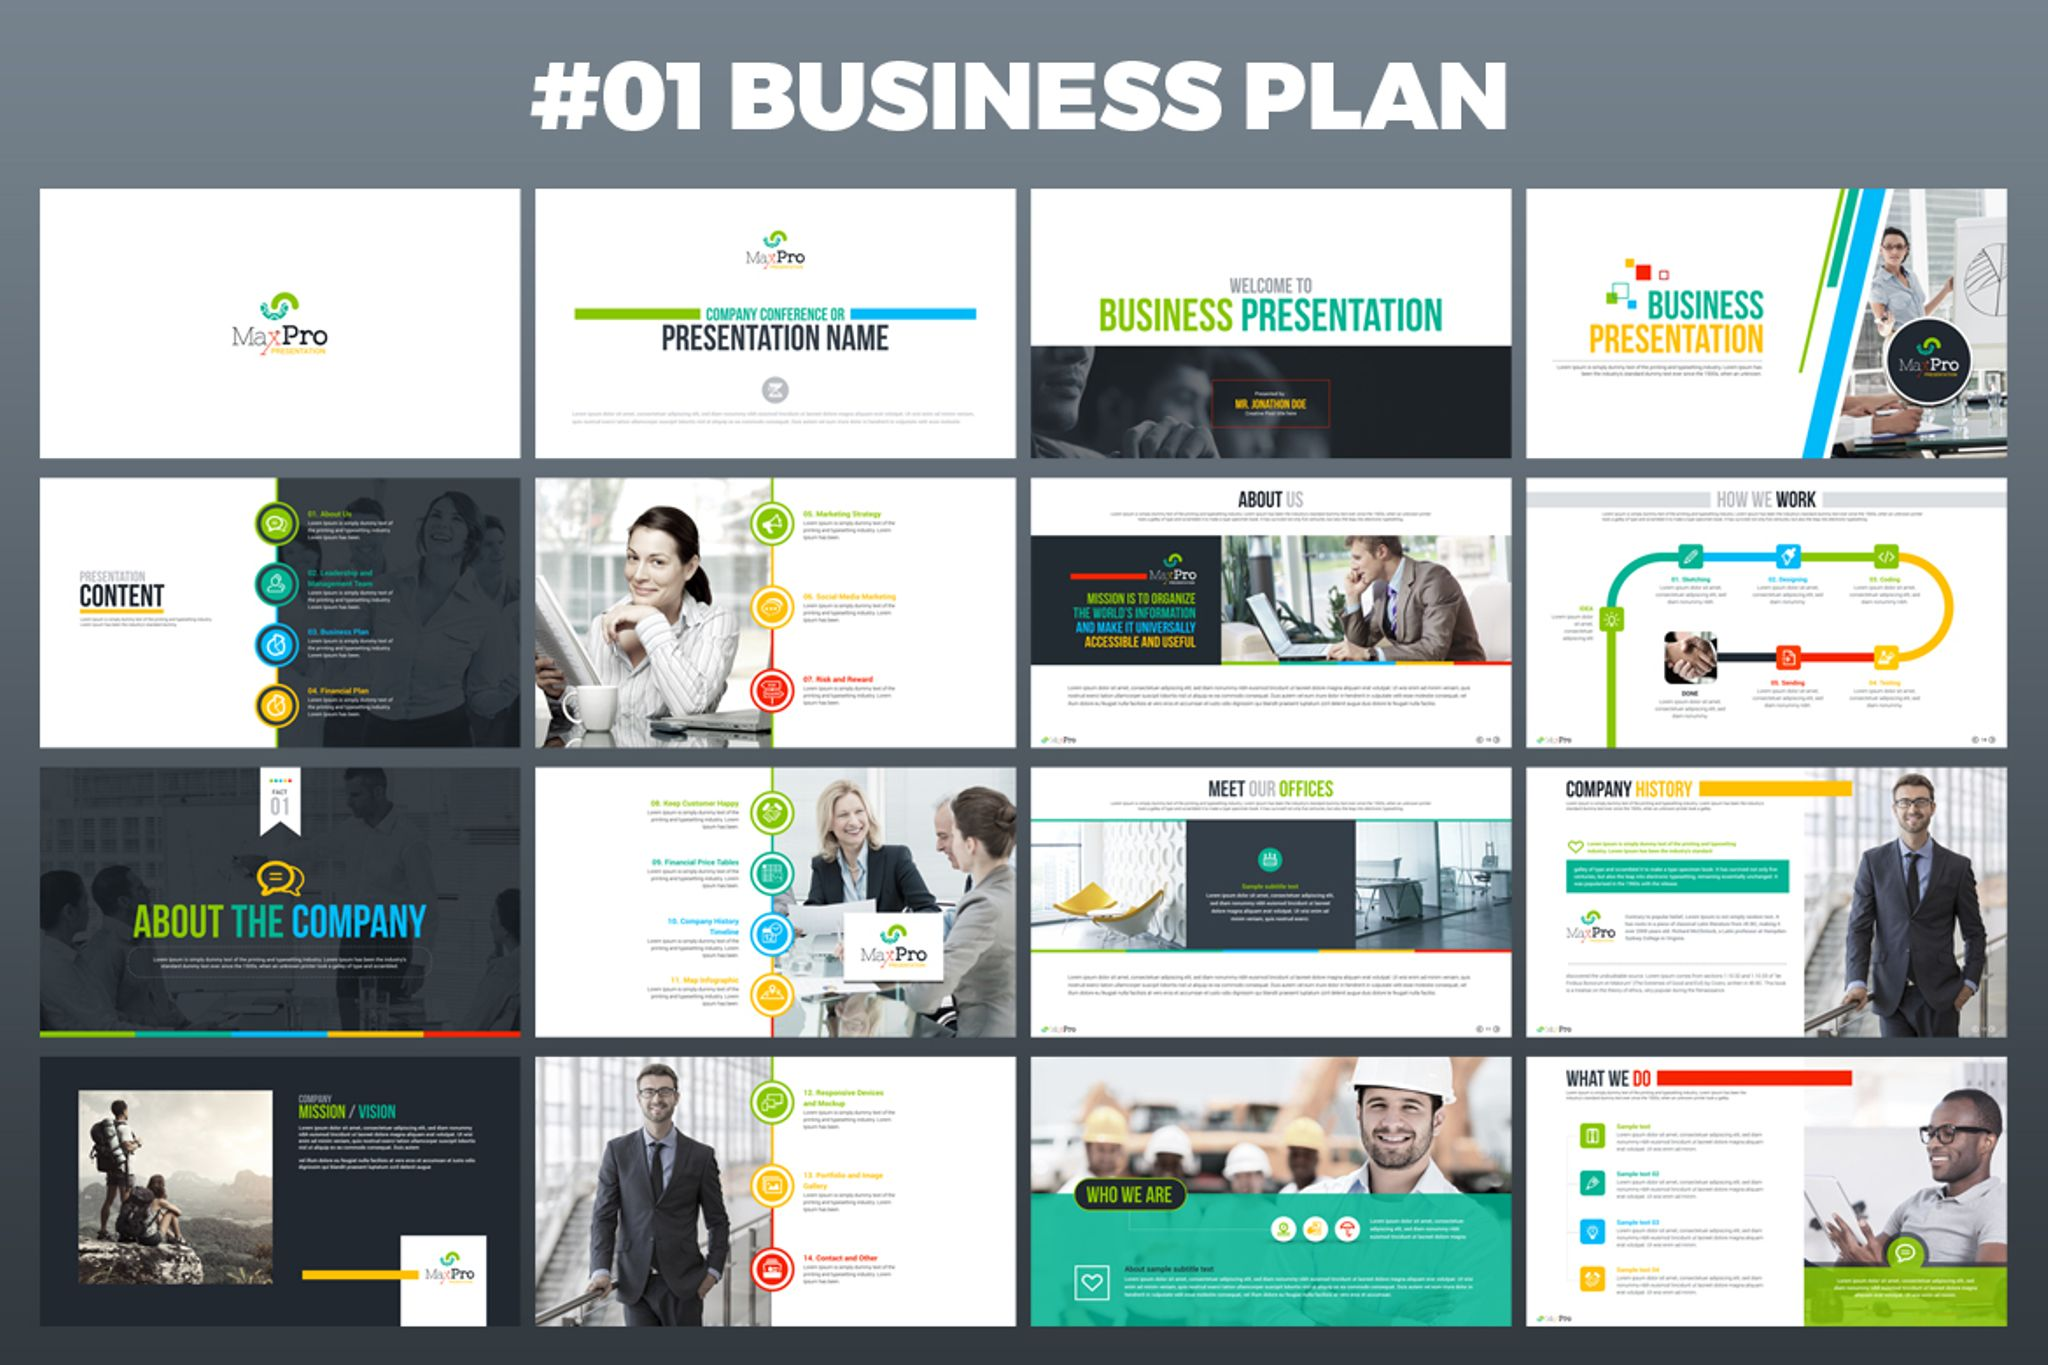 Maxpro business plan powerpoint template 66751 maxpro business plan powerpoint template big screenshot toneelgroepblik Gallery